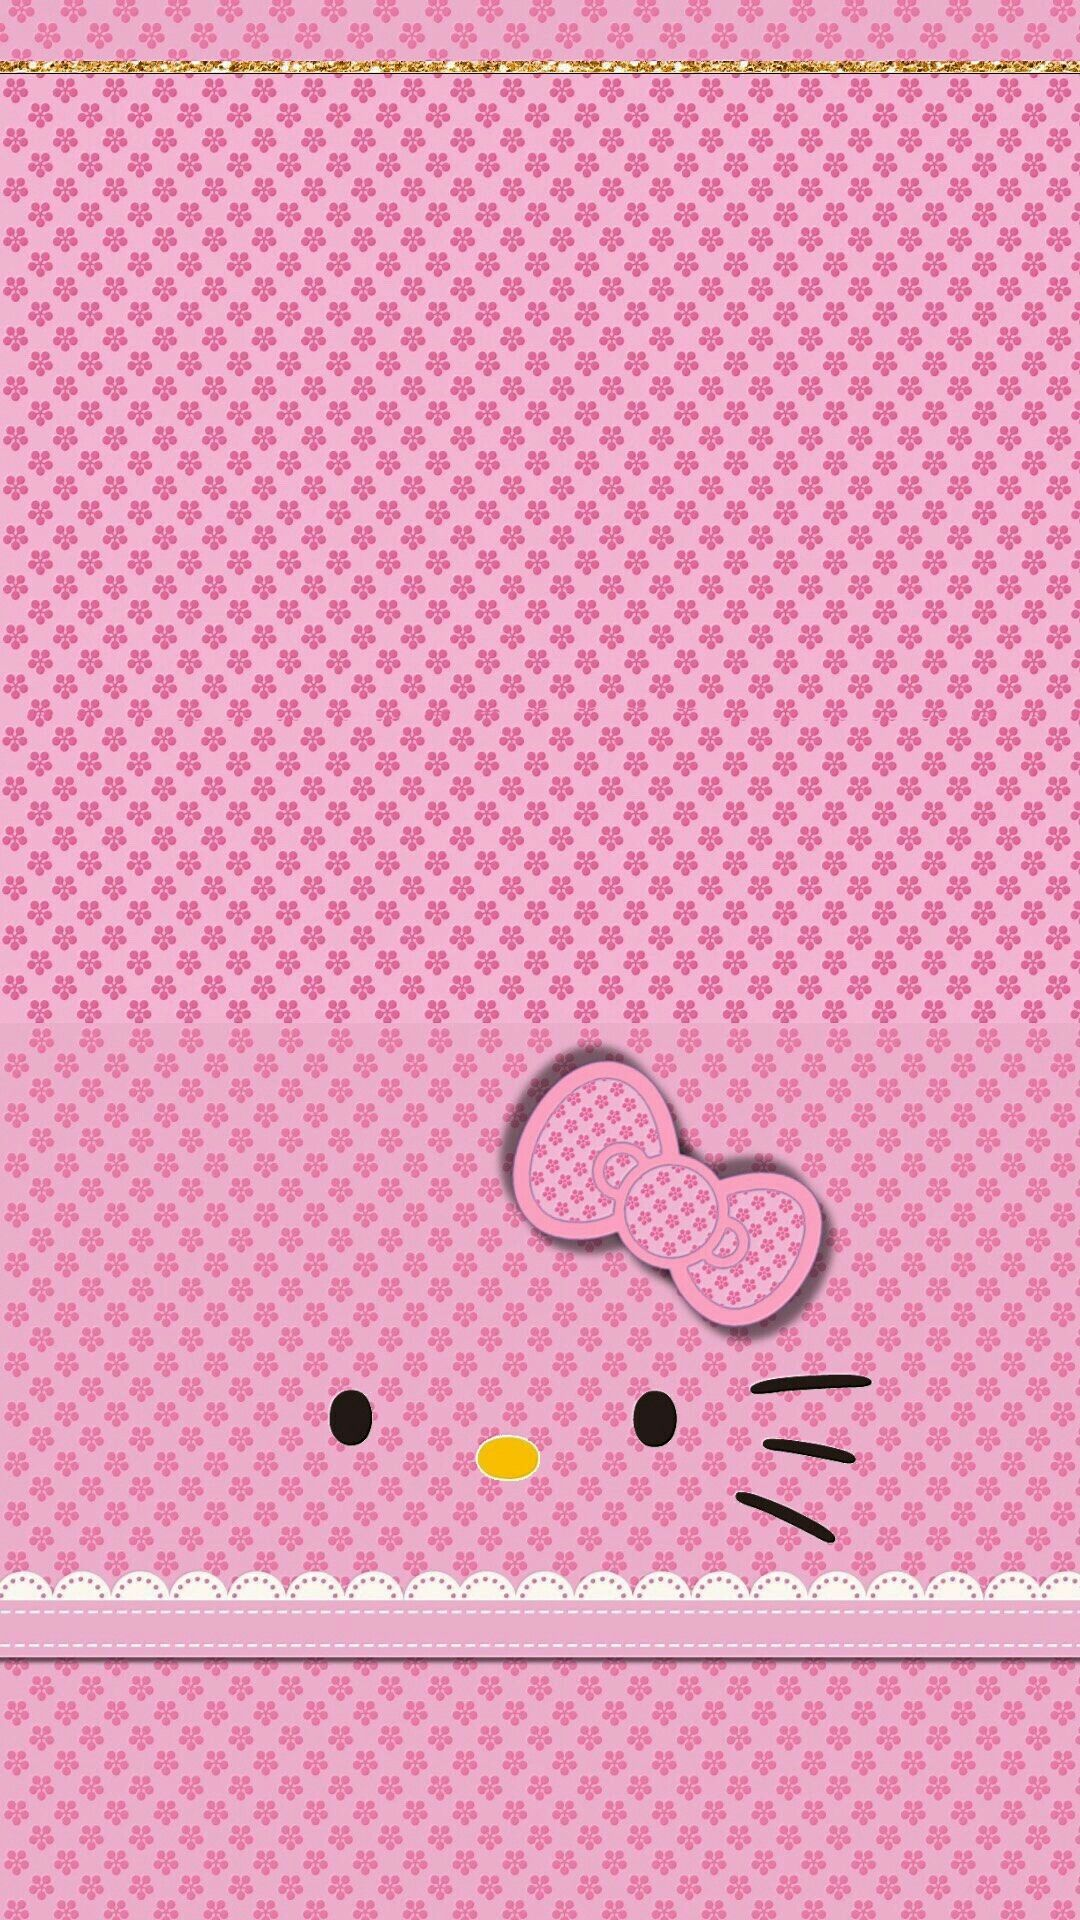 Cool Wallpaper Hello Kitty Shelf - a9da6e737843956e3dd3bc8e488d3ed6  Image_394124.jpg